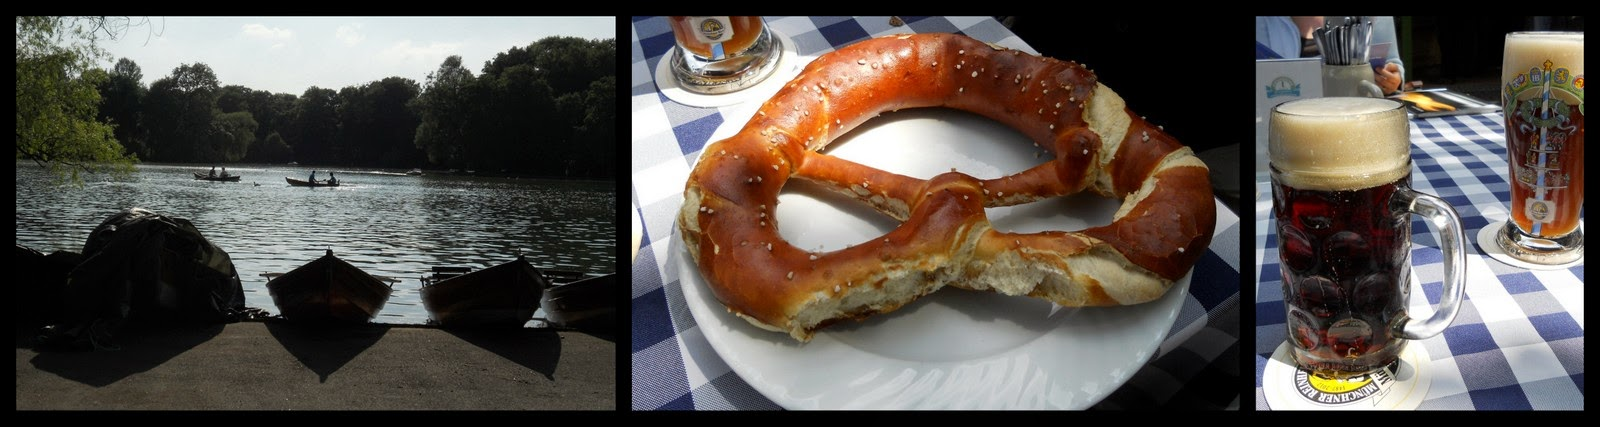 Ryanair Weekend Destination Ideas: Beer and a Pretzel in the Englischer Garten in Munich, Germany